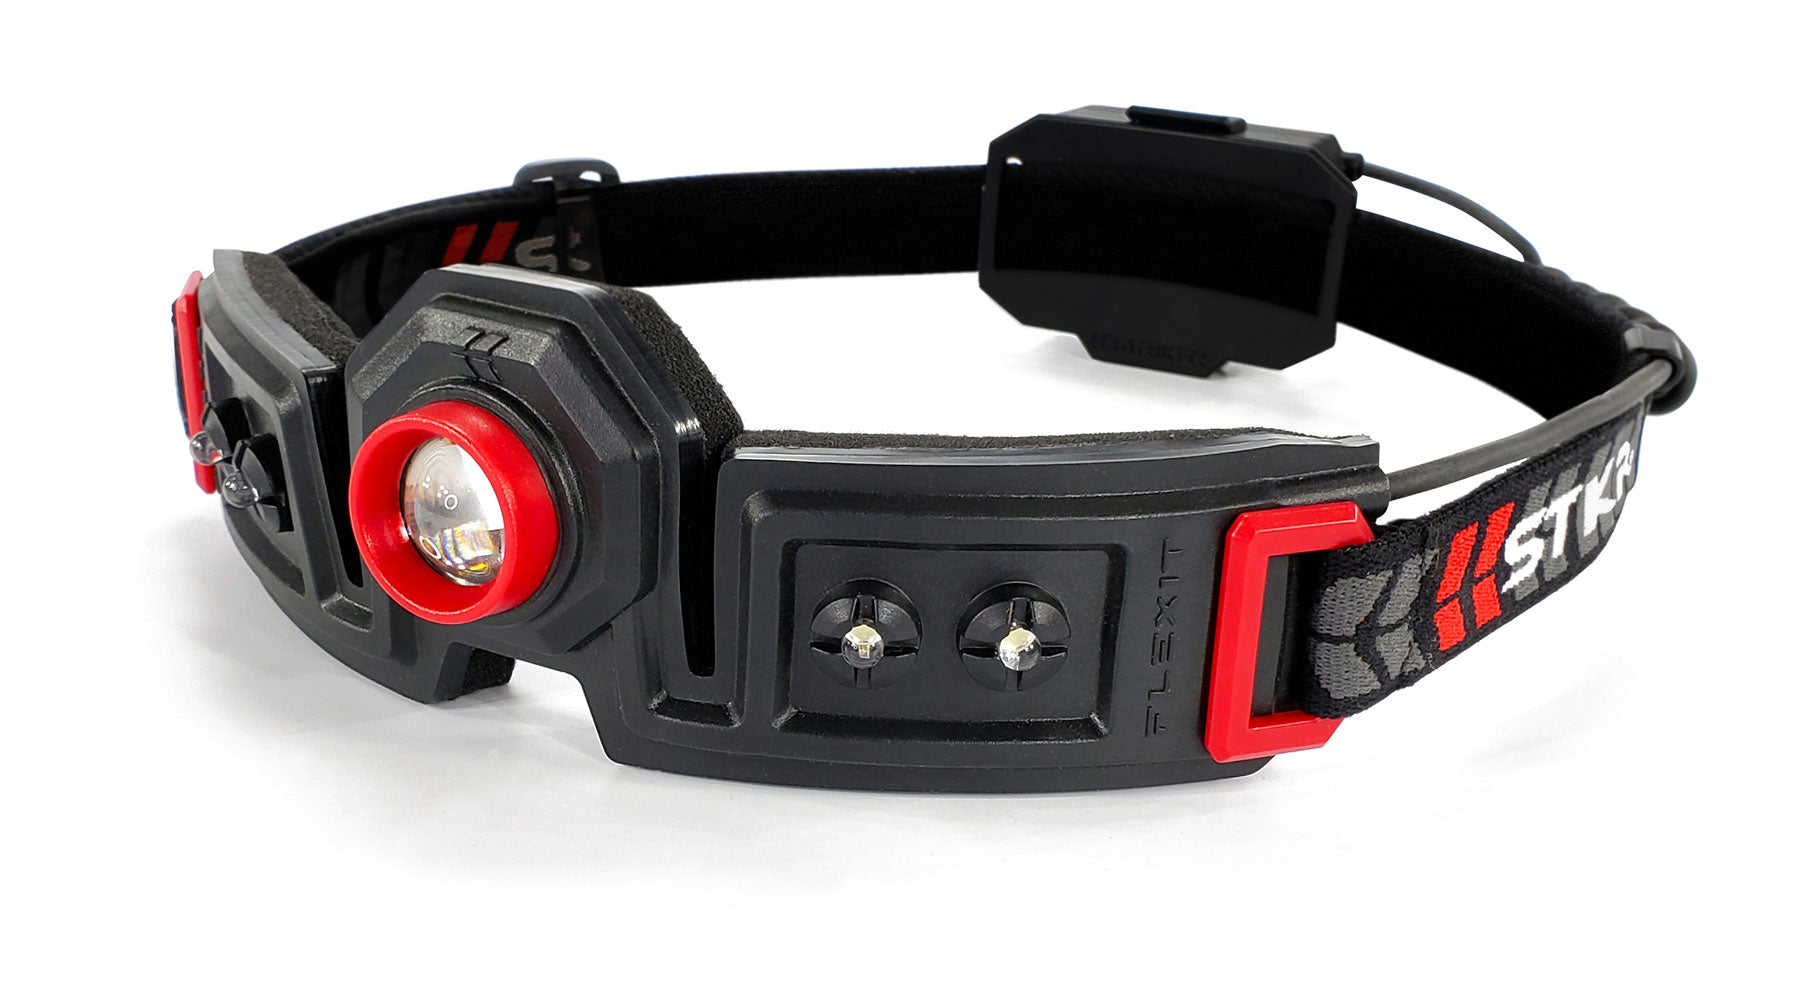 FLEXIT Headlamp 2.5 Flexible Headlamp - striker